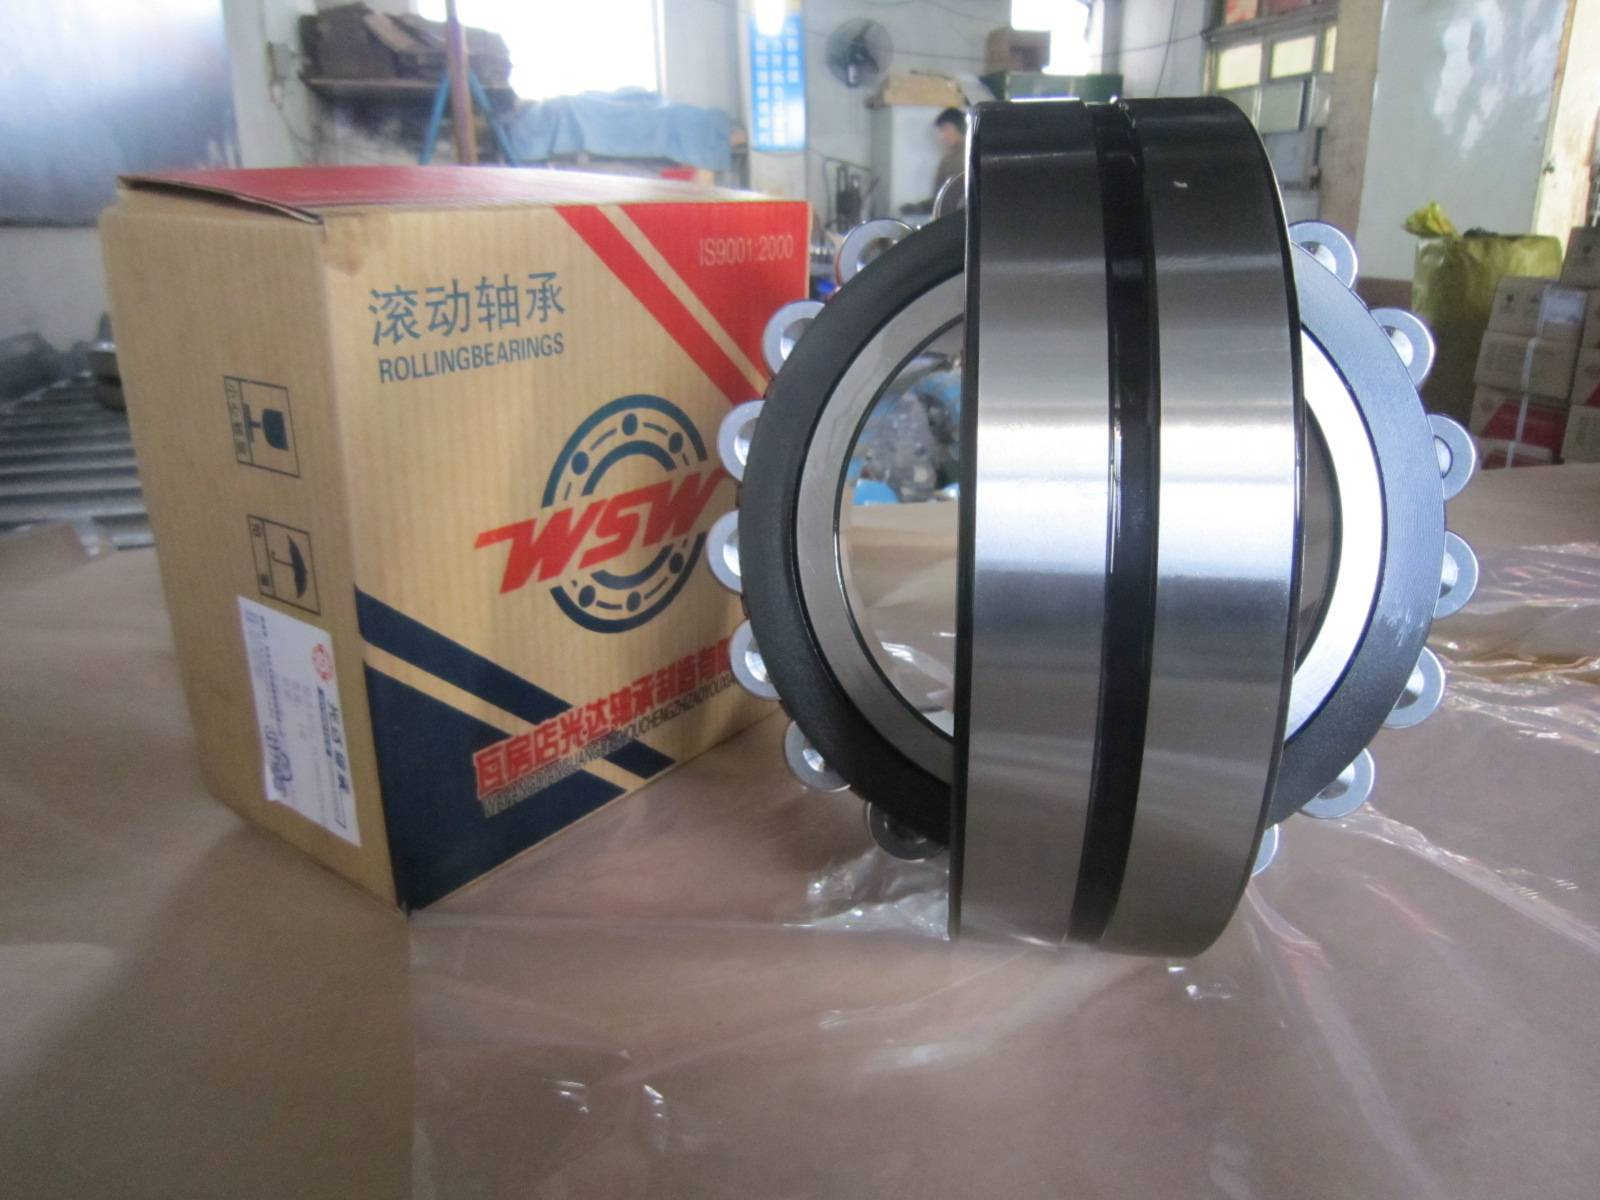 313893, examination equipment, traction equipment, cylindrical roller bearings